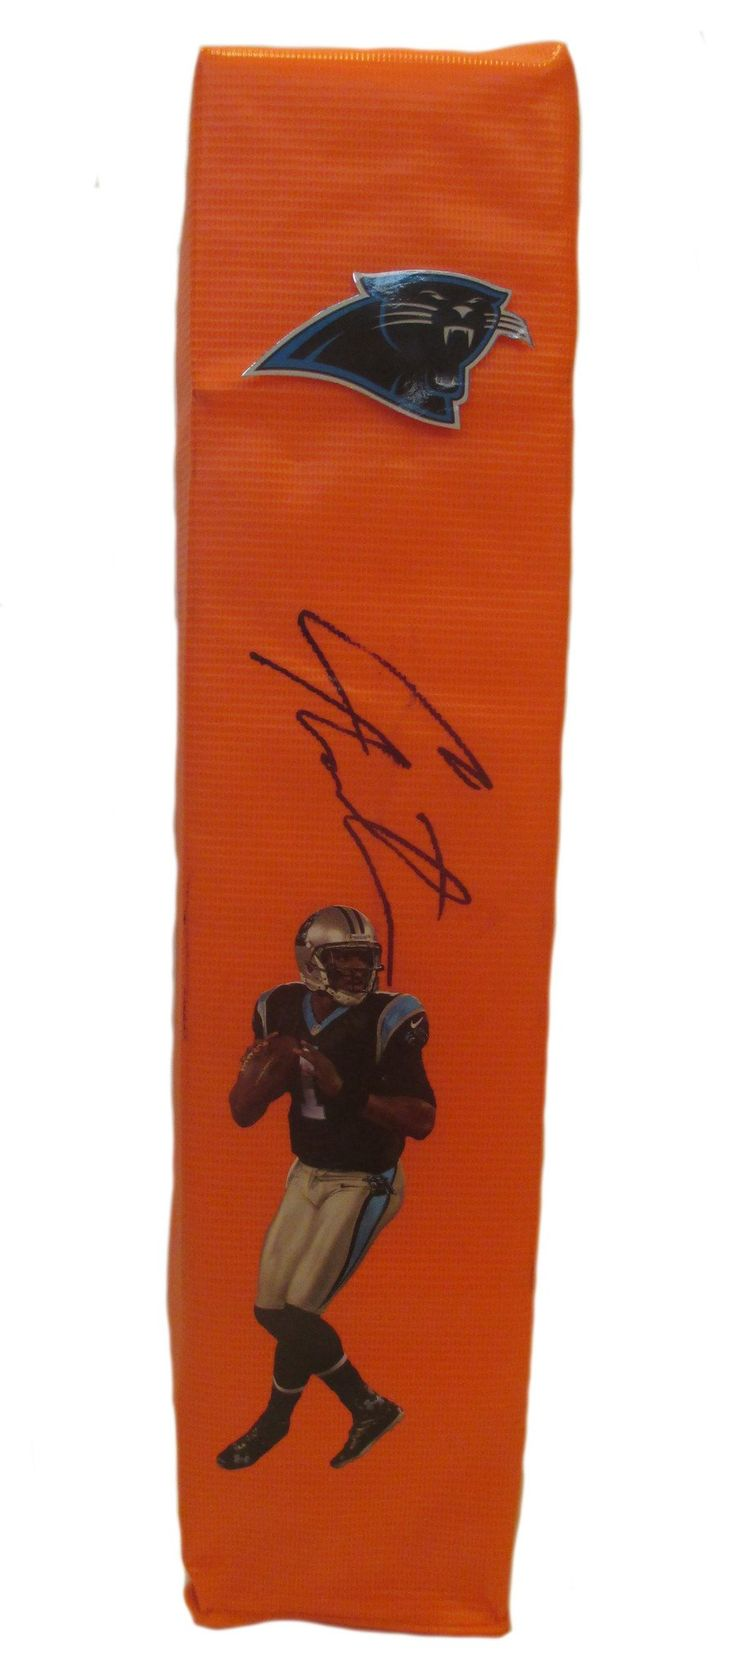 Cam Newton Autographed Carolina Panthers Full Size Photo Football End Zone Touchdown. This is a brand-new custom Cam Newton signed Carolina Panthersfull sizefootball end zone pylon. This pylon measures 4inches (Width) X 4inches (Length) X 18inches (Height). Cam signed the pylonin black sharpie.Check out the photo of Cam signing for us. ** Proof photo is included for free with purchase. Please click on images to enlarge. Please browse our websitefor additional NFL & NCAA…